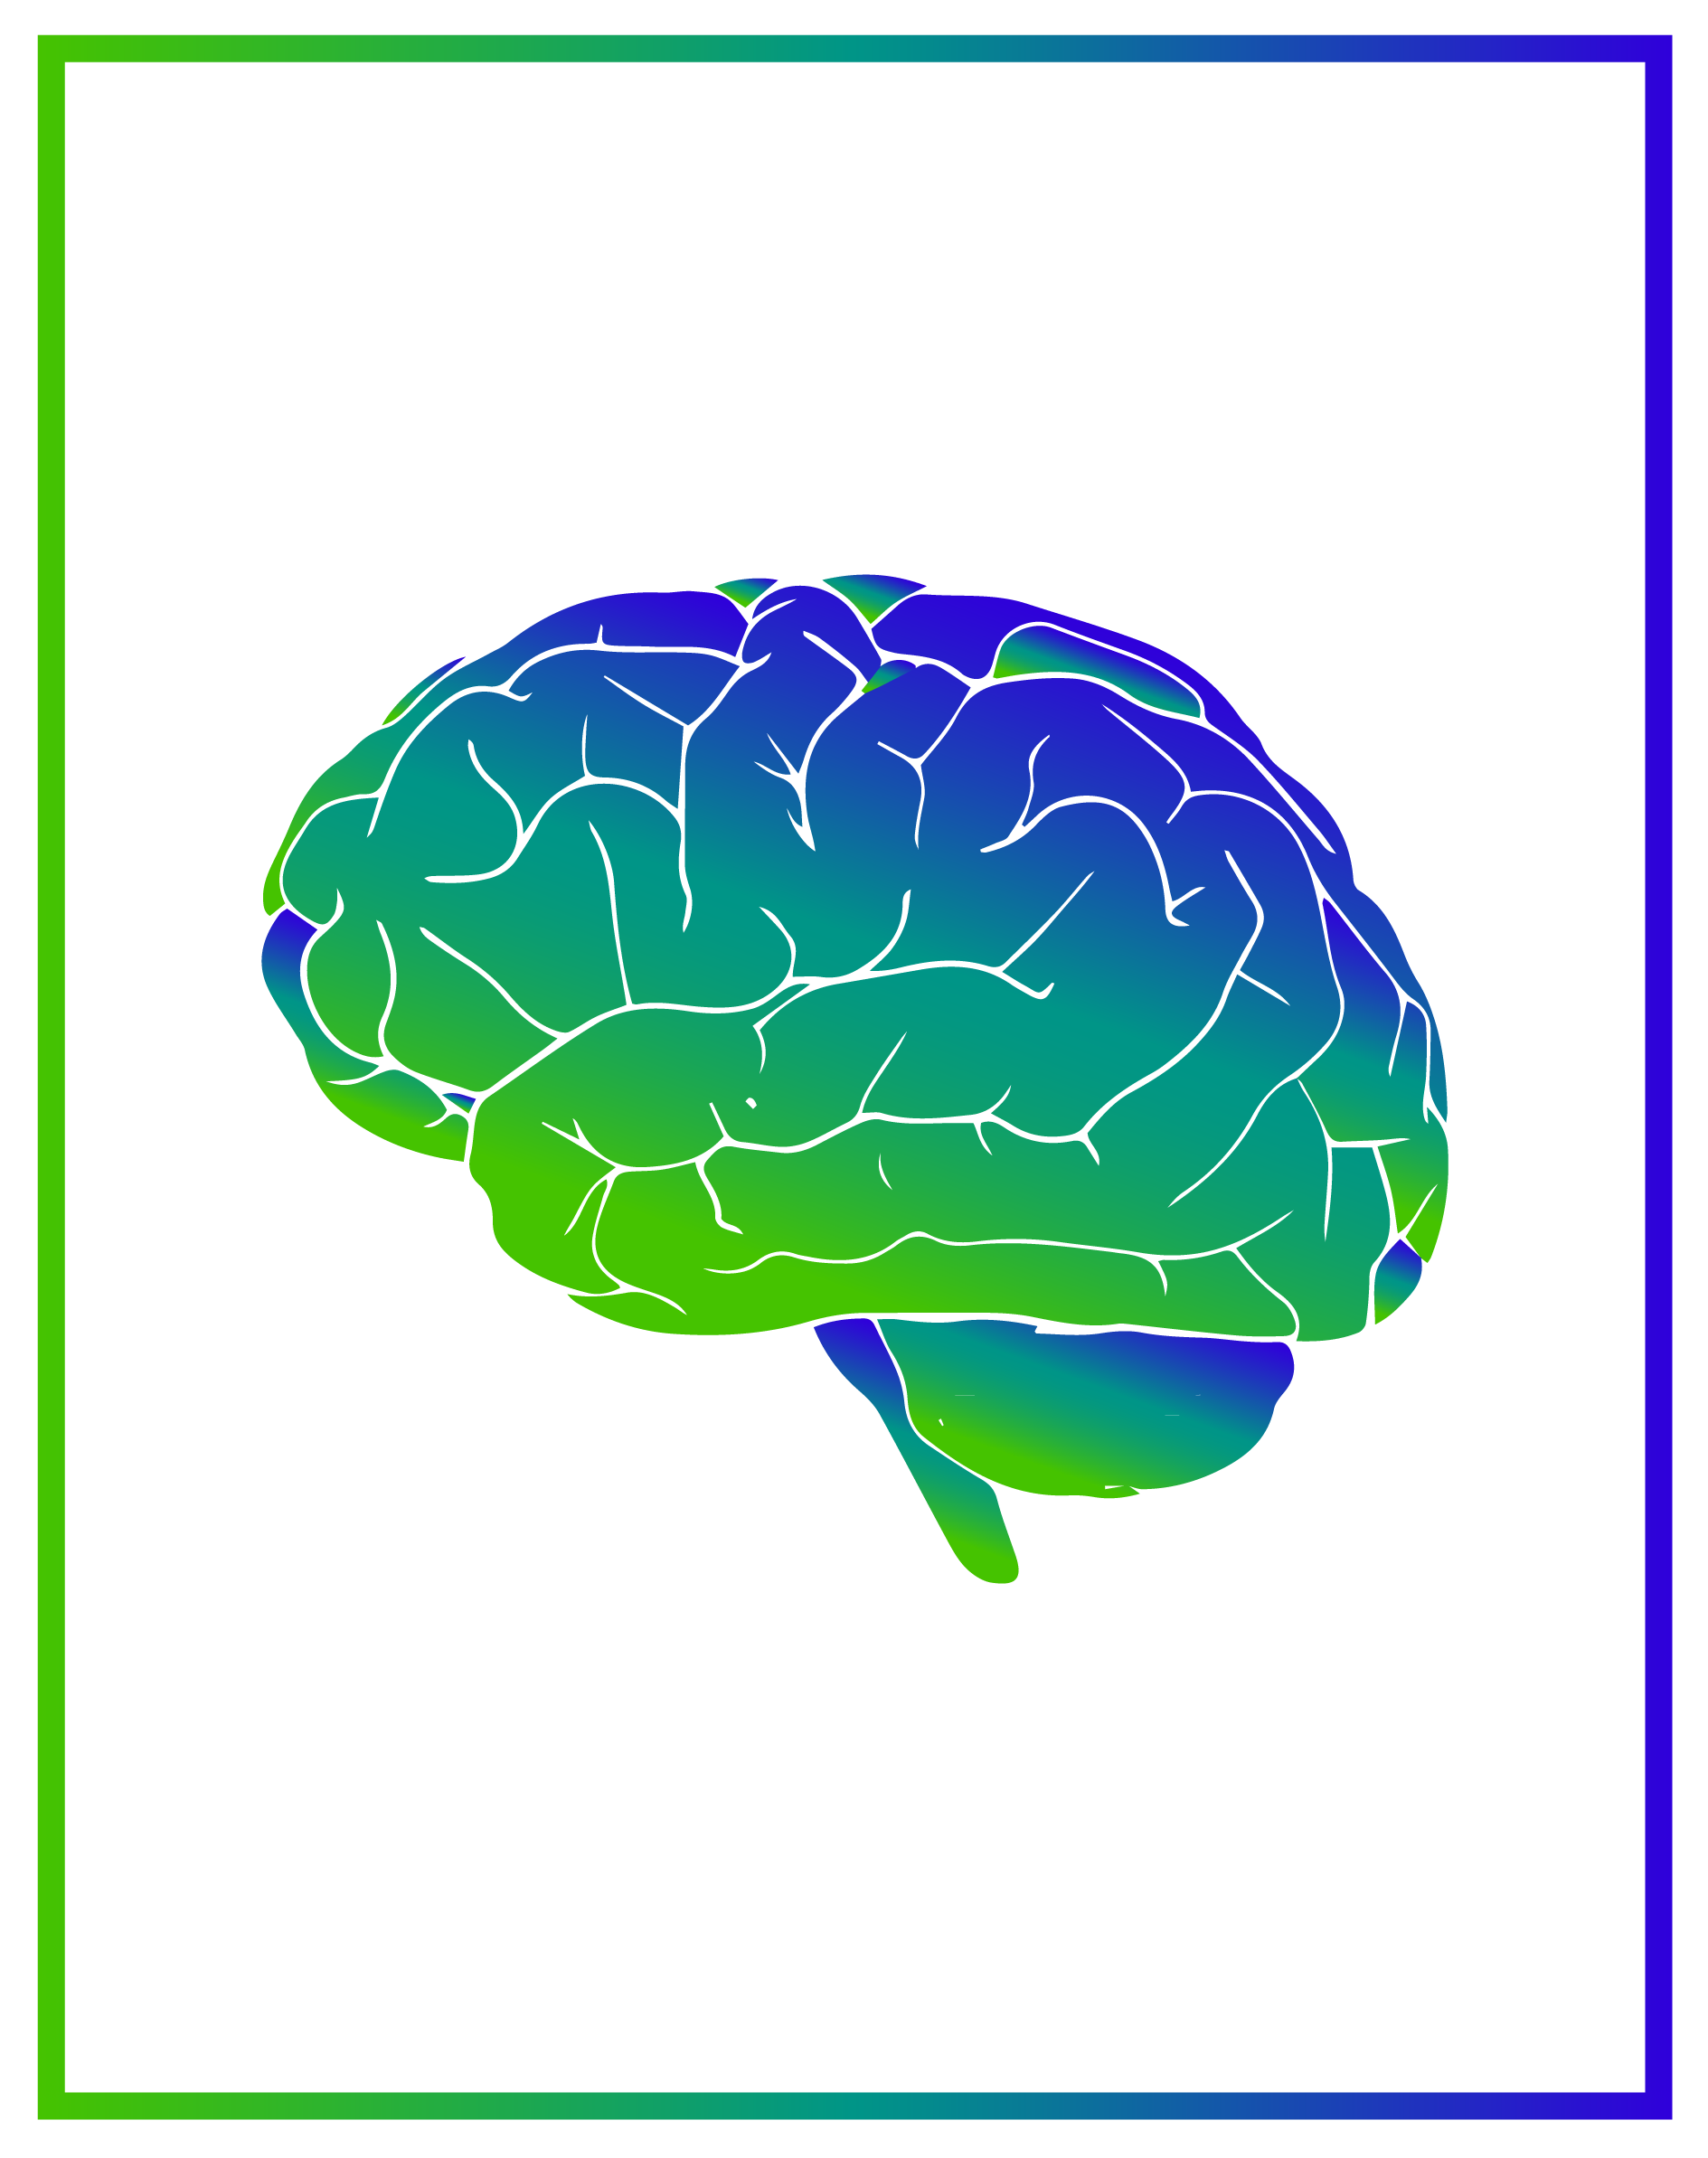 The human brain weighs approximately 3lbs, contains 86 billion neurons and uses 20% of our body's oxygen levels to function.